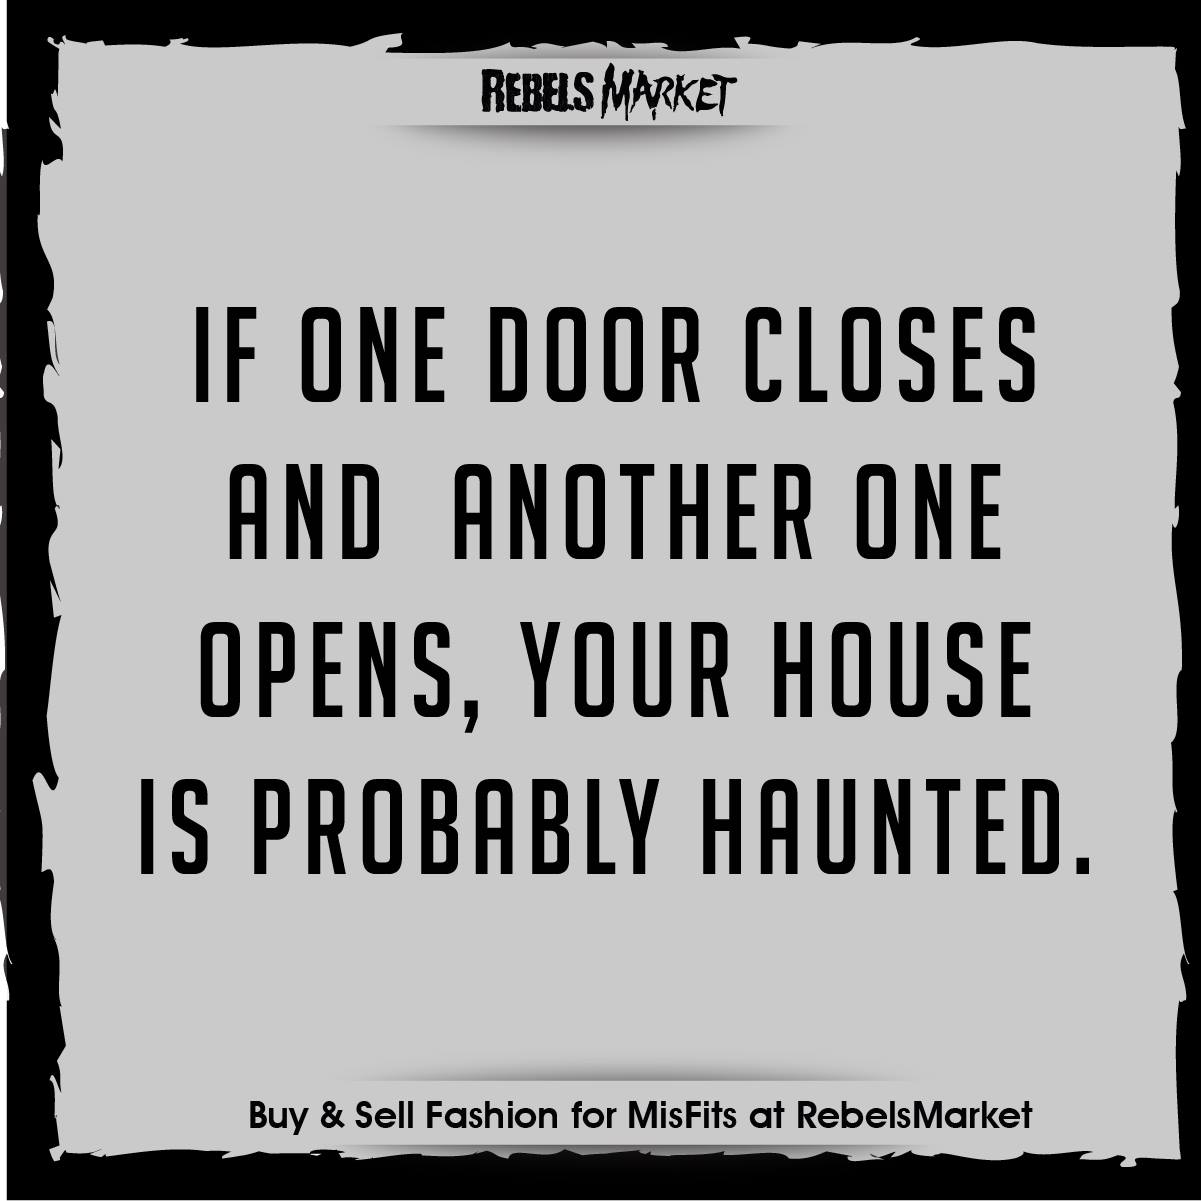 if one door closes and another one opens, you house is probably haunted